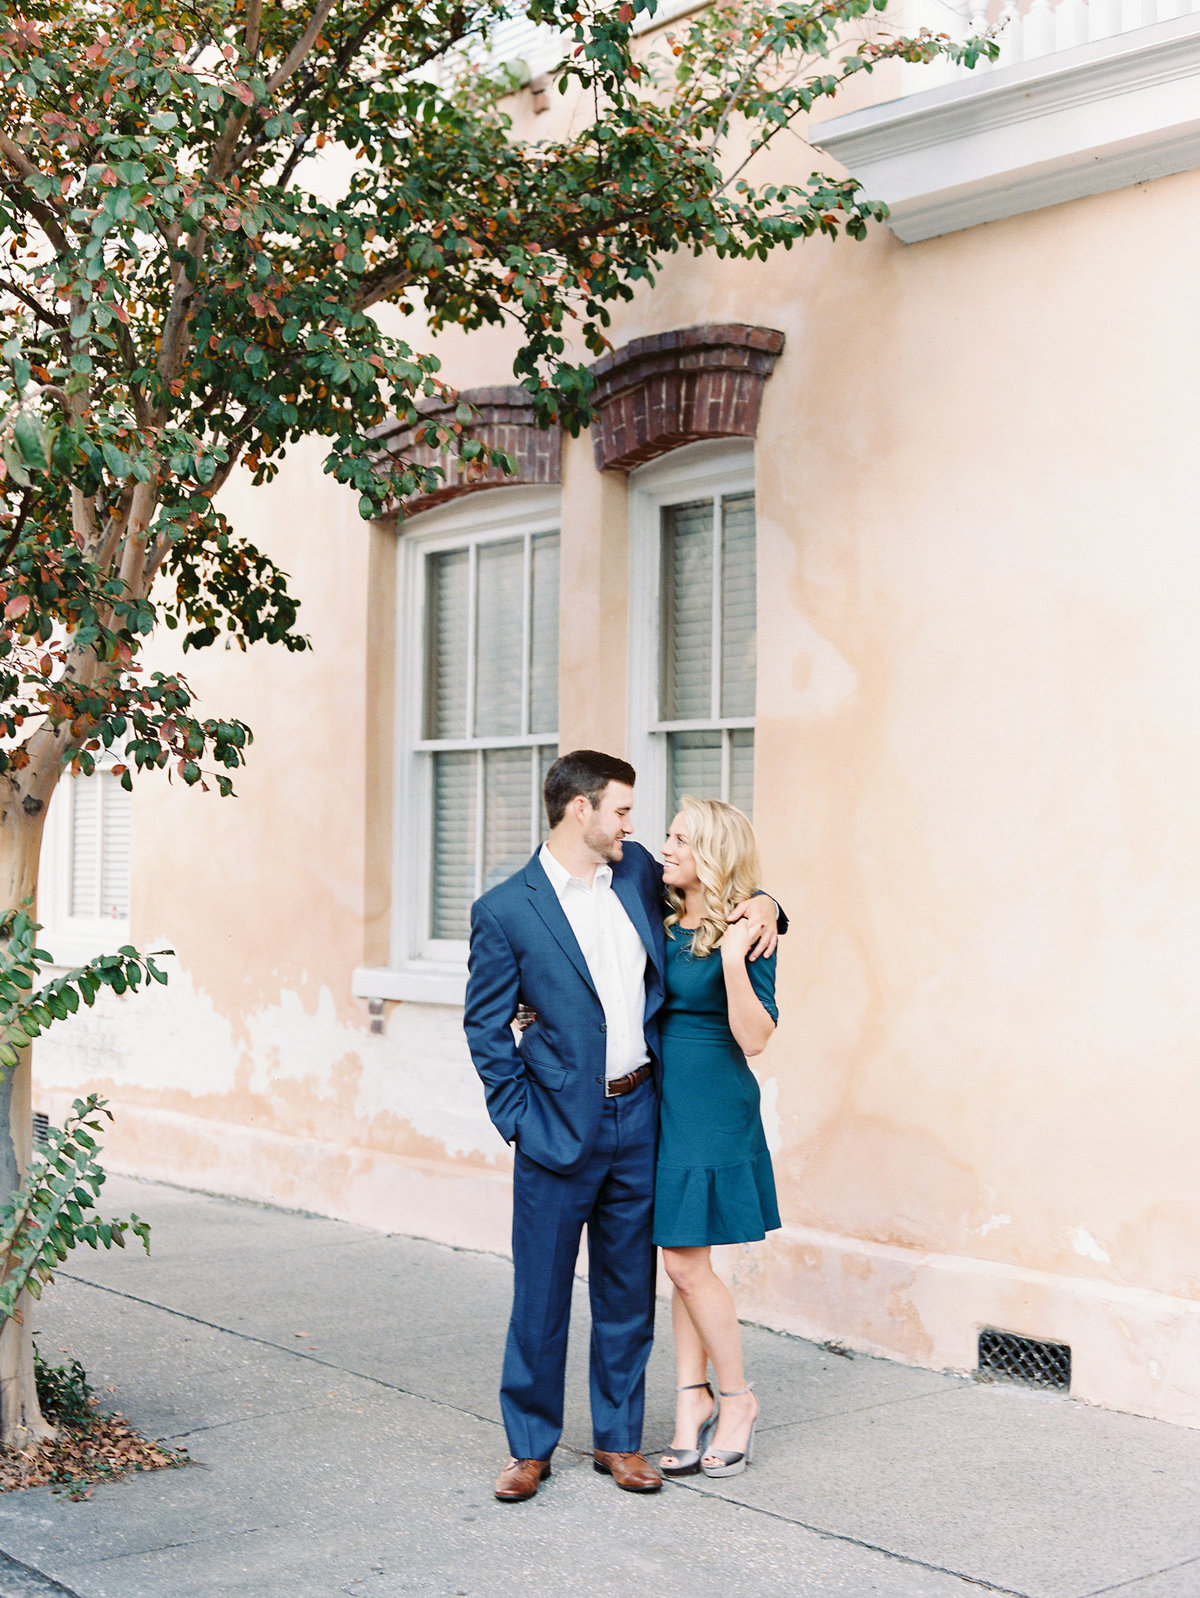 Walterboro-Beaufort-Downtown-Charleston-Engagement-19